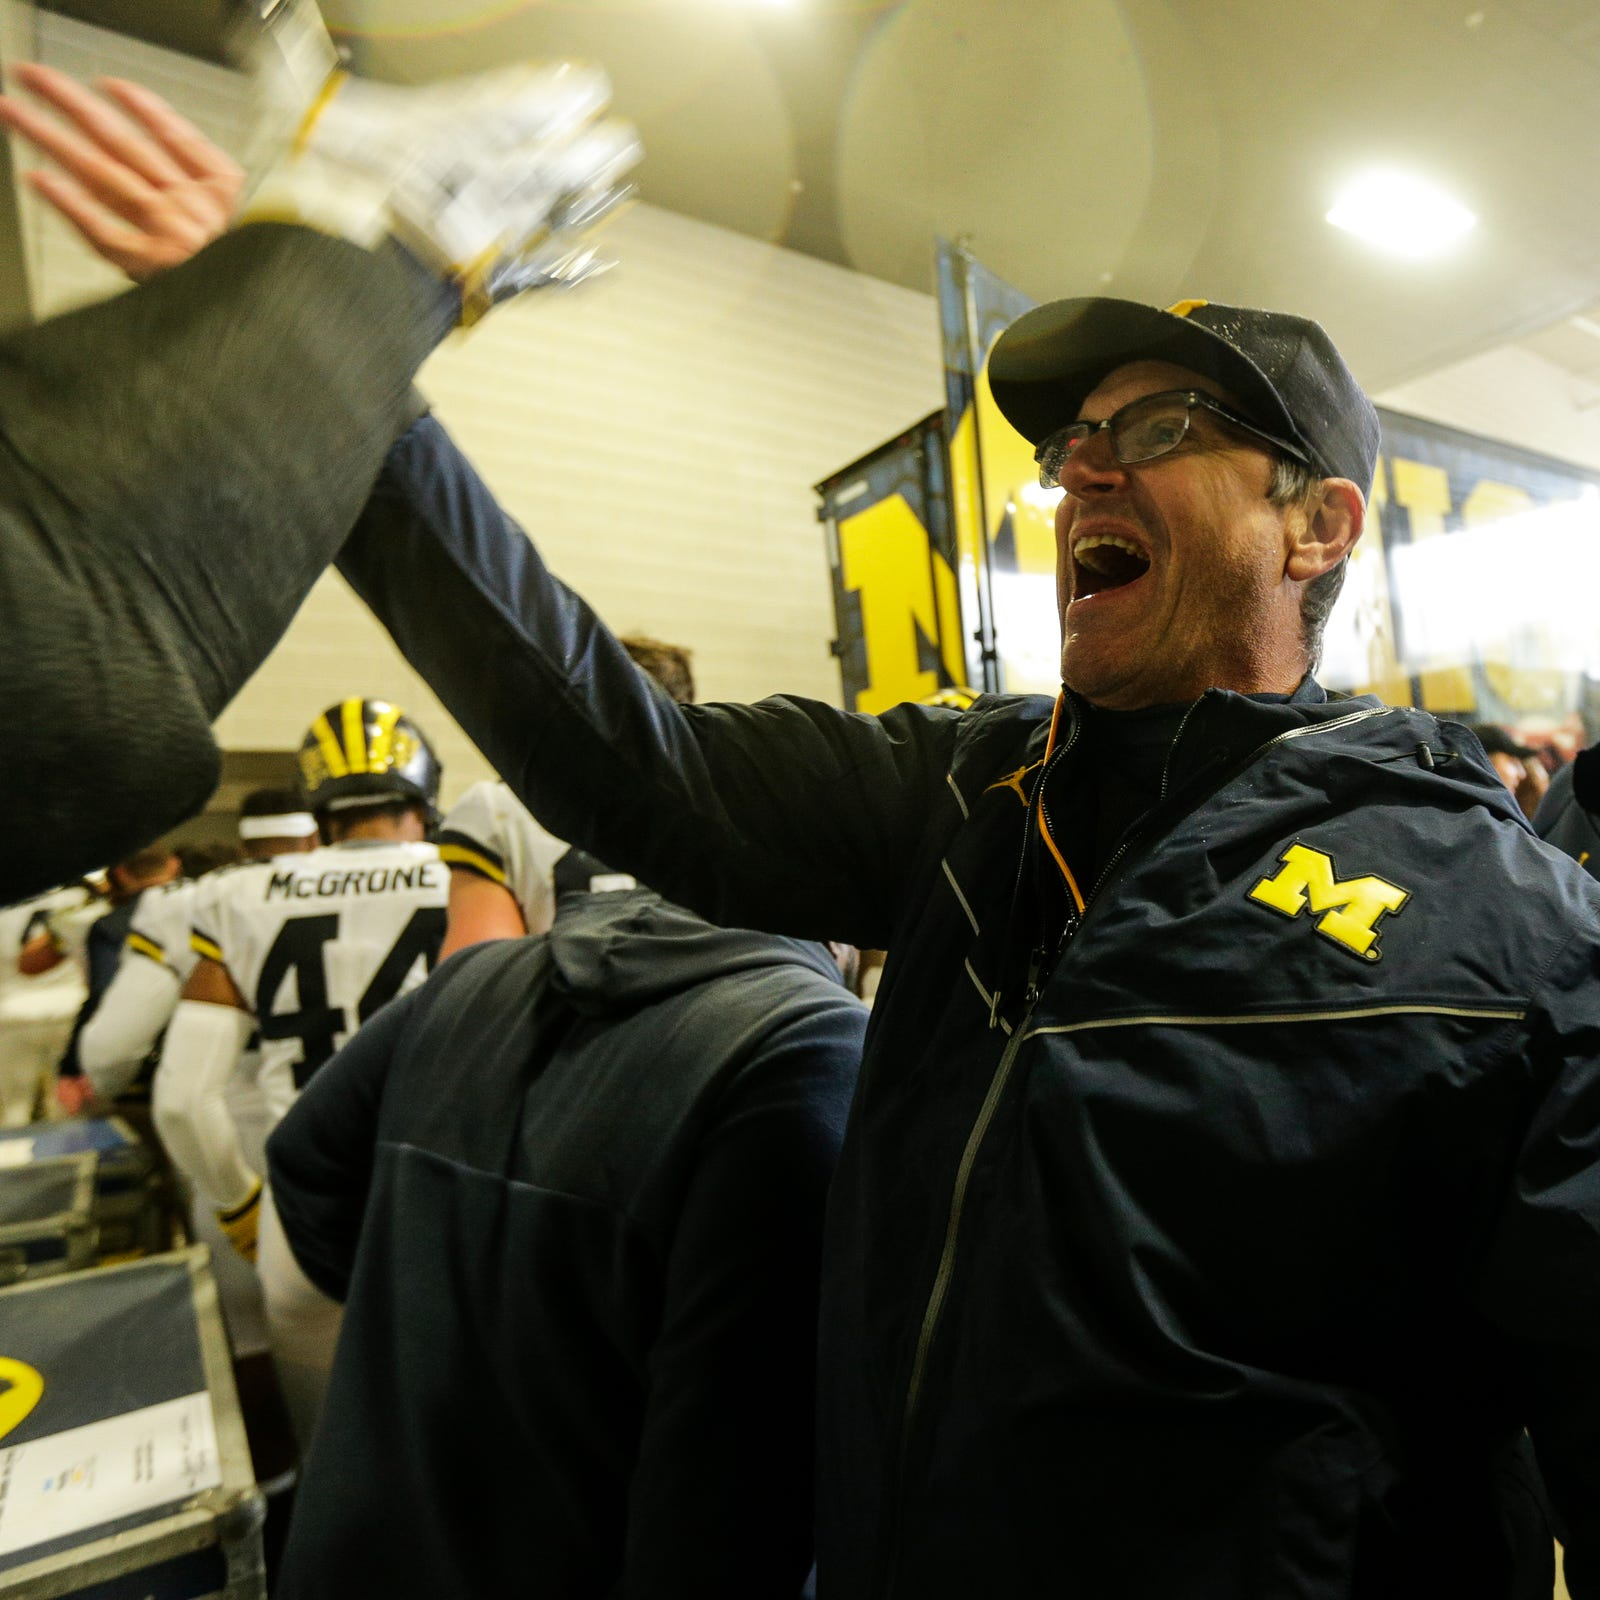 Michigan head coach Jim Harbaugh high-fives players and coaches at the end of the tunnel after the 21-7 win over Michigan State on Spartan Stadium in East Lansing, Saturday, Oct. 20, 2018.